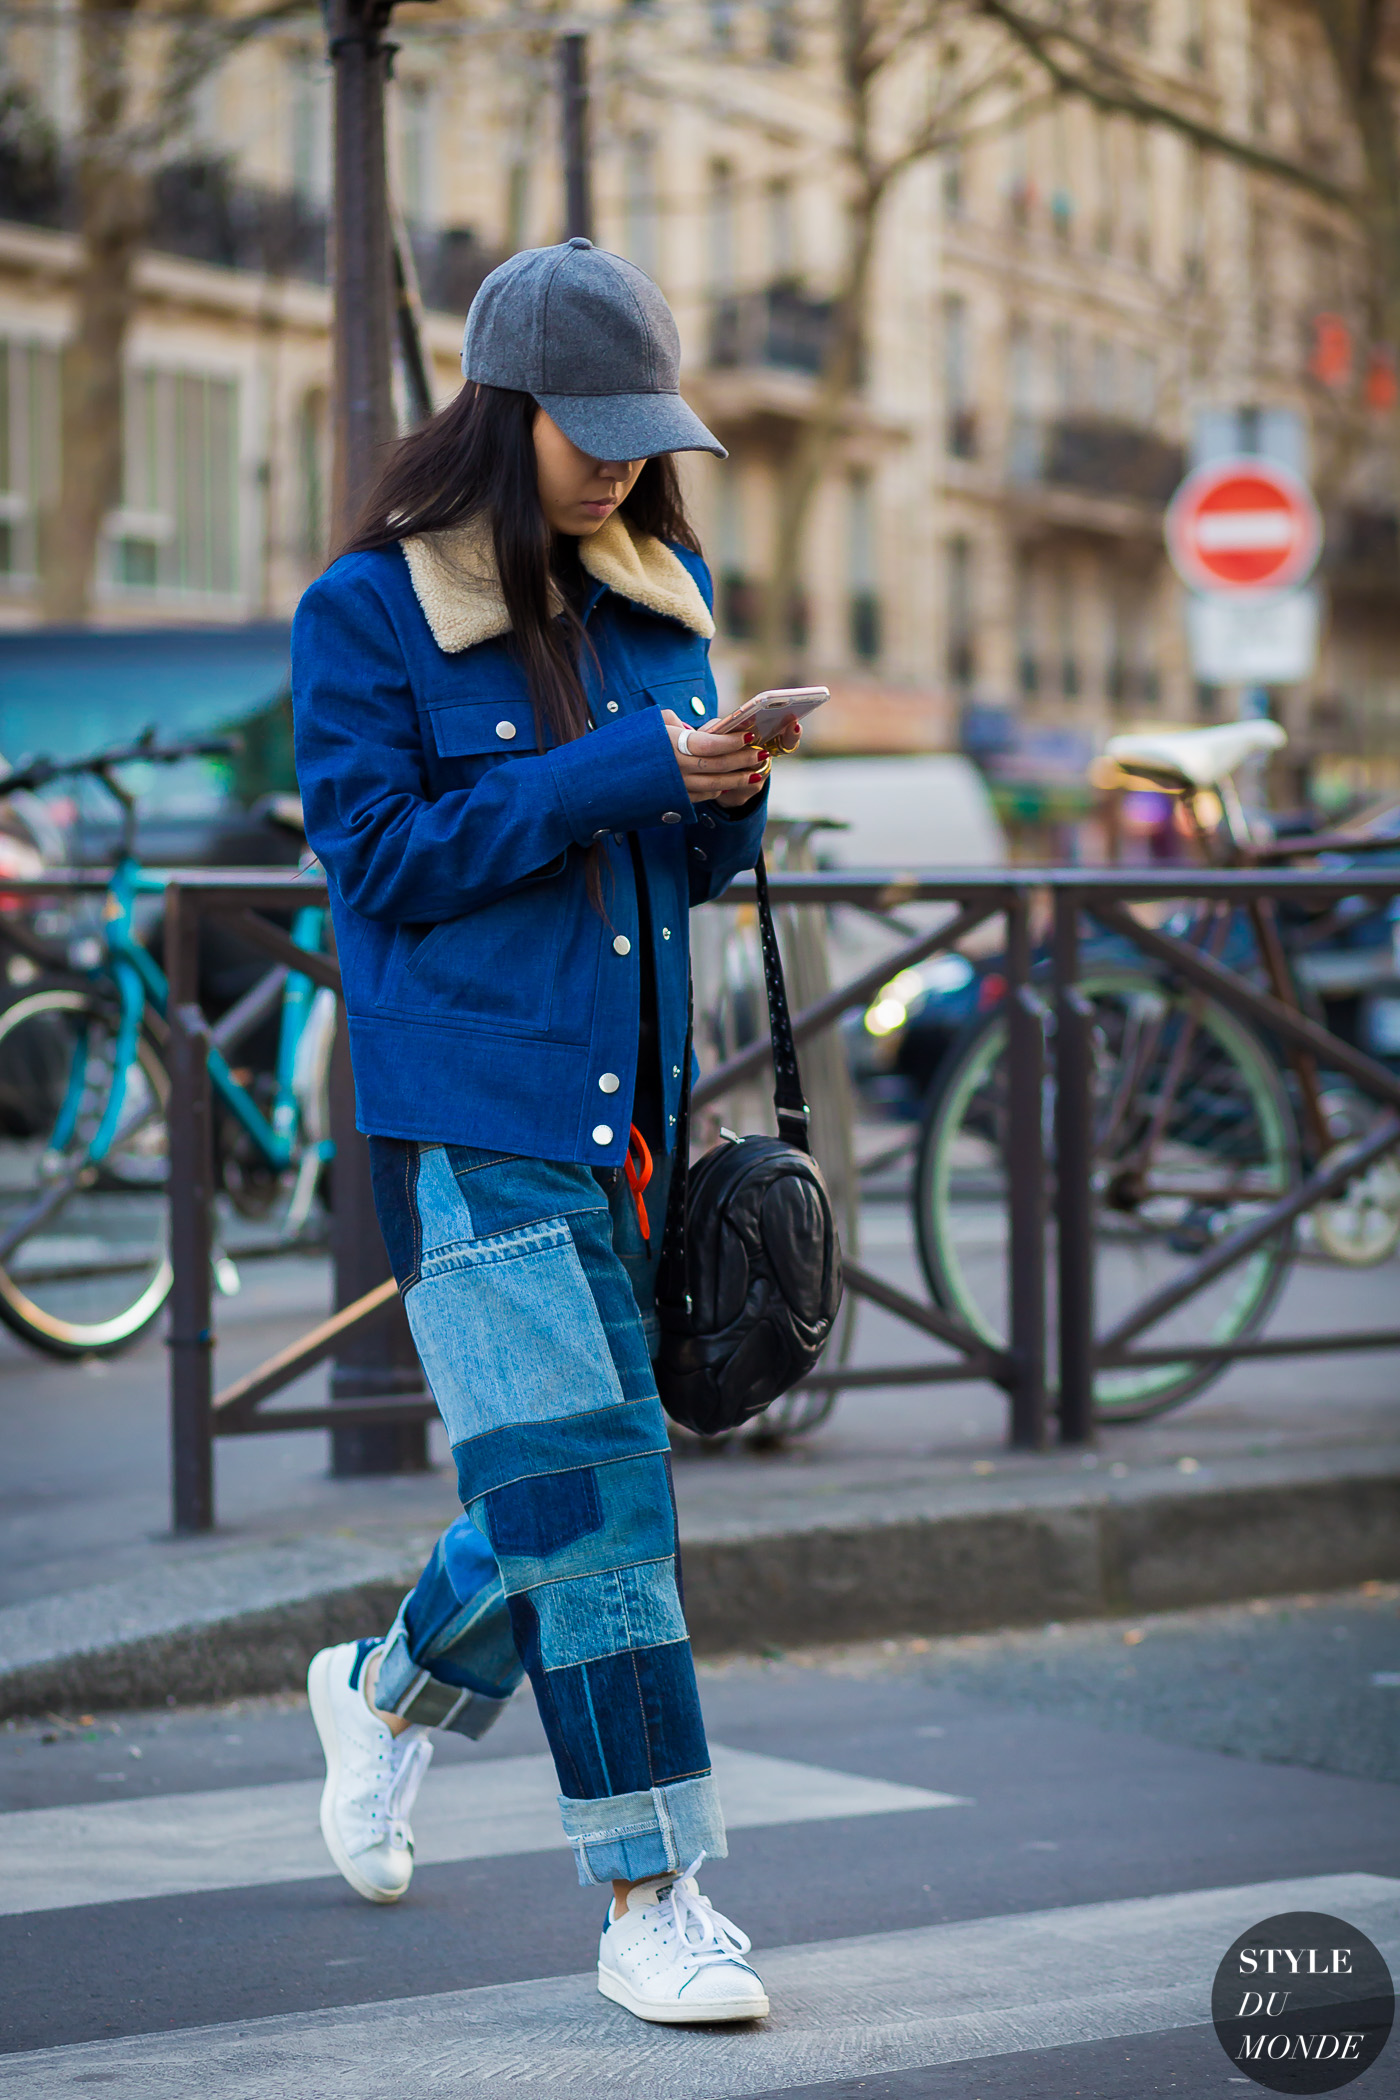 Christina Paik Street Style Street Fashion Streetsnaps by STYLEDUMONDE Street Style Fashion Photography